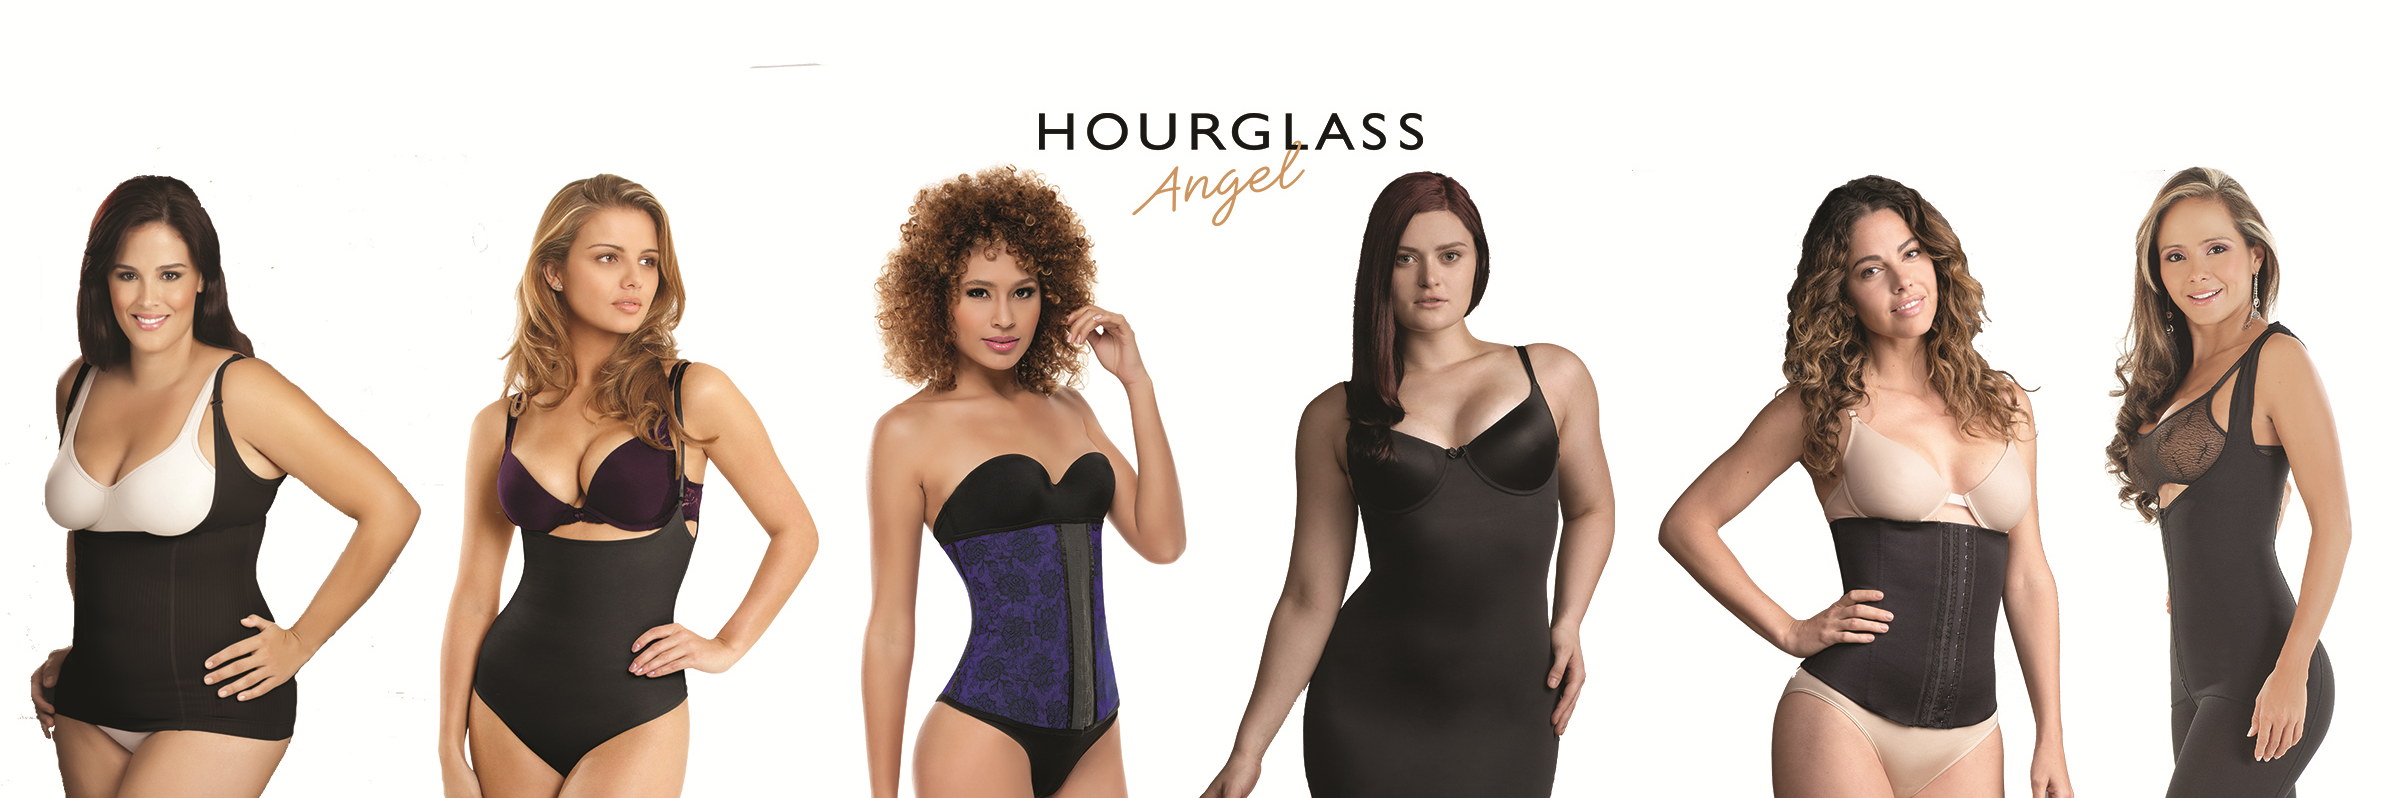 10% Off + Free Shipping Hourglass Angel Coupon Codes